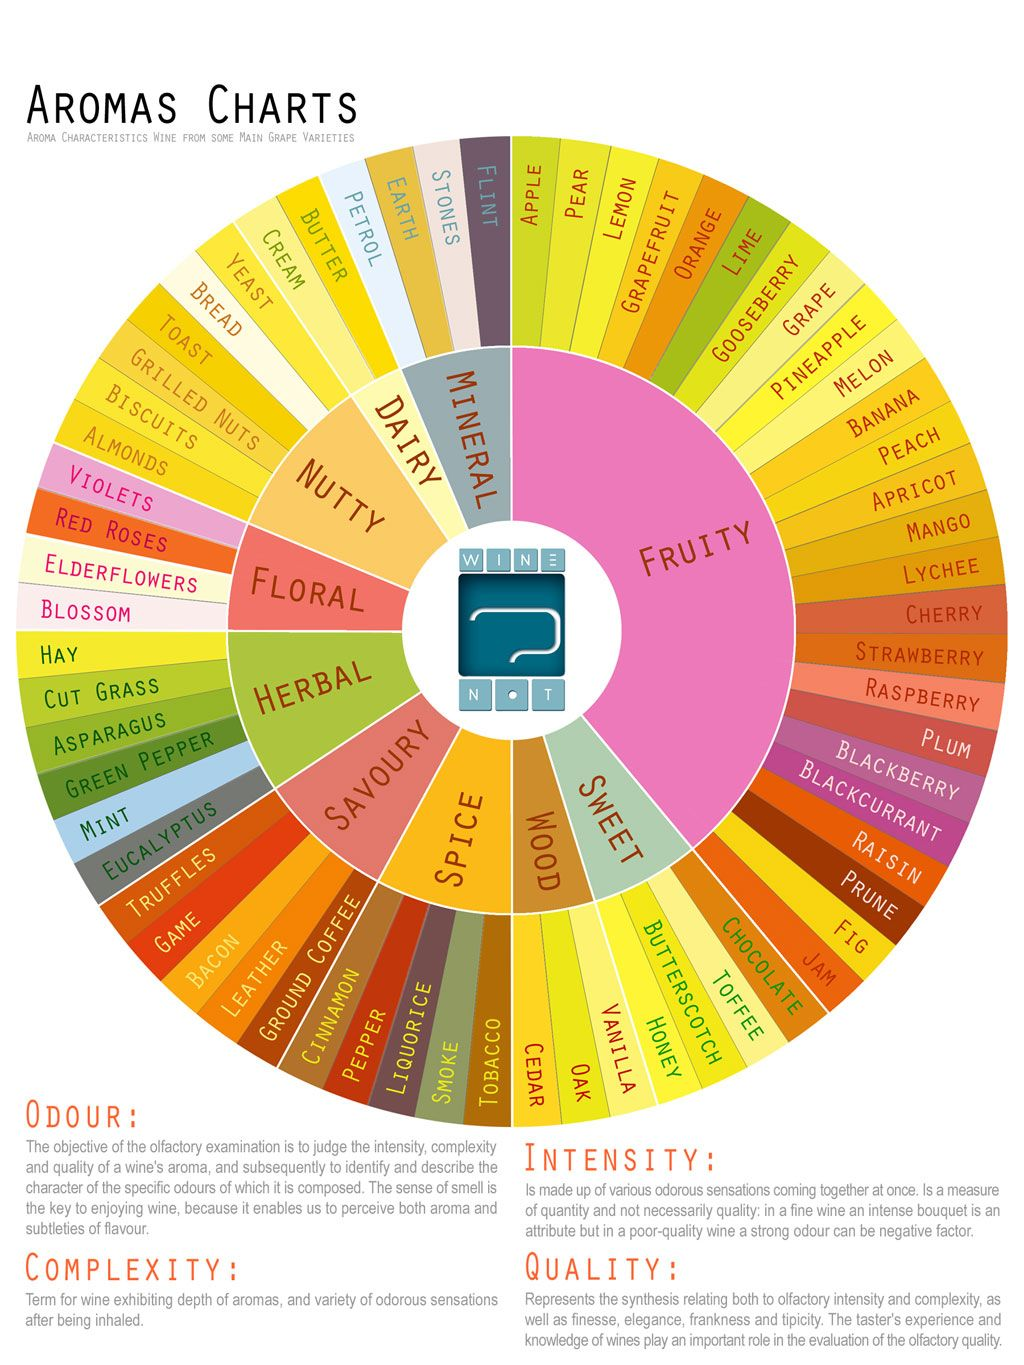 handy aromas chart on how to describe the wine aroma based what   in it also rh pinterest